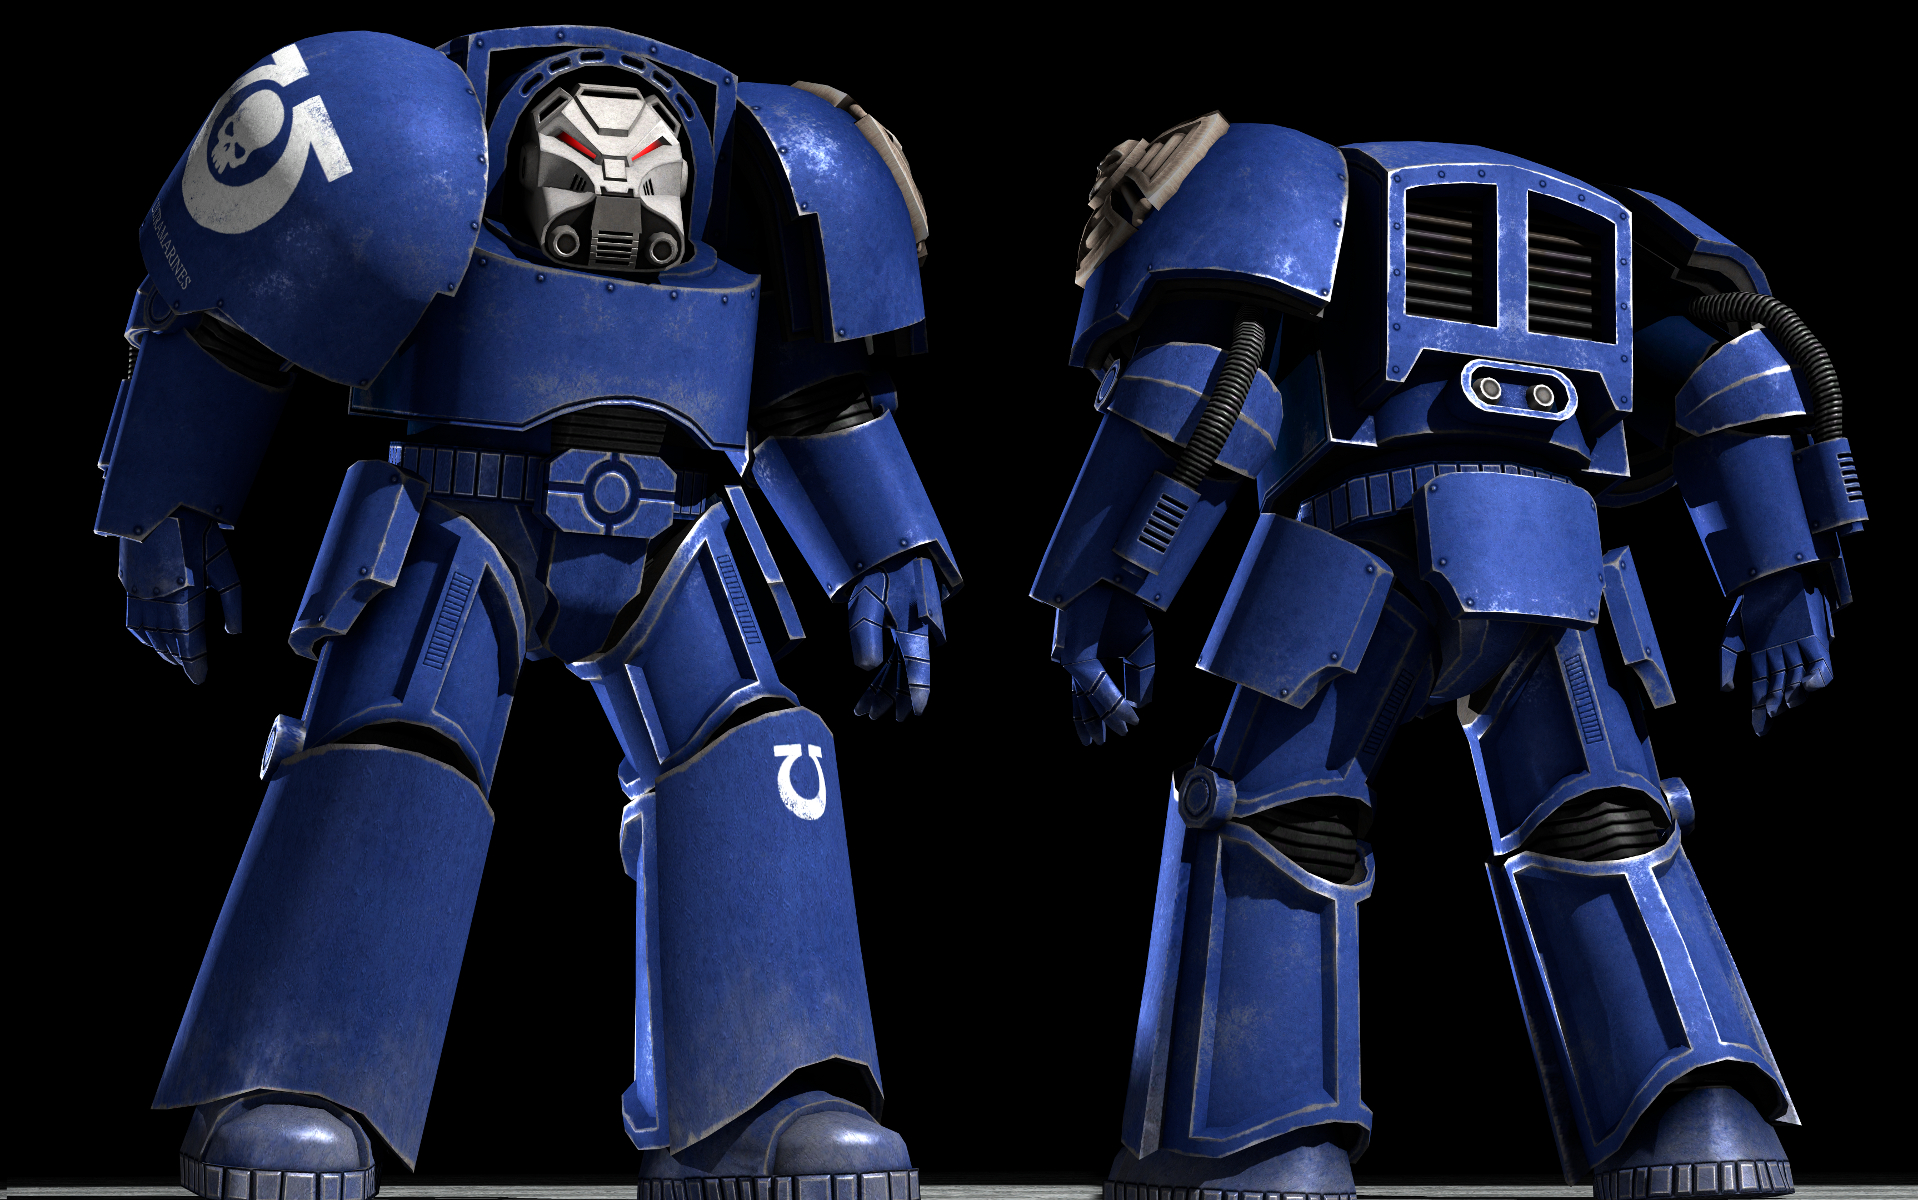 Ultramarine Terminator armour by Joazz